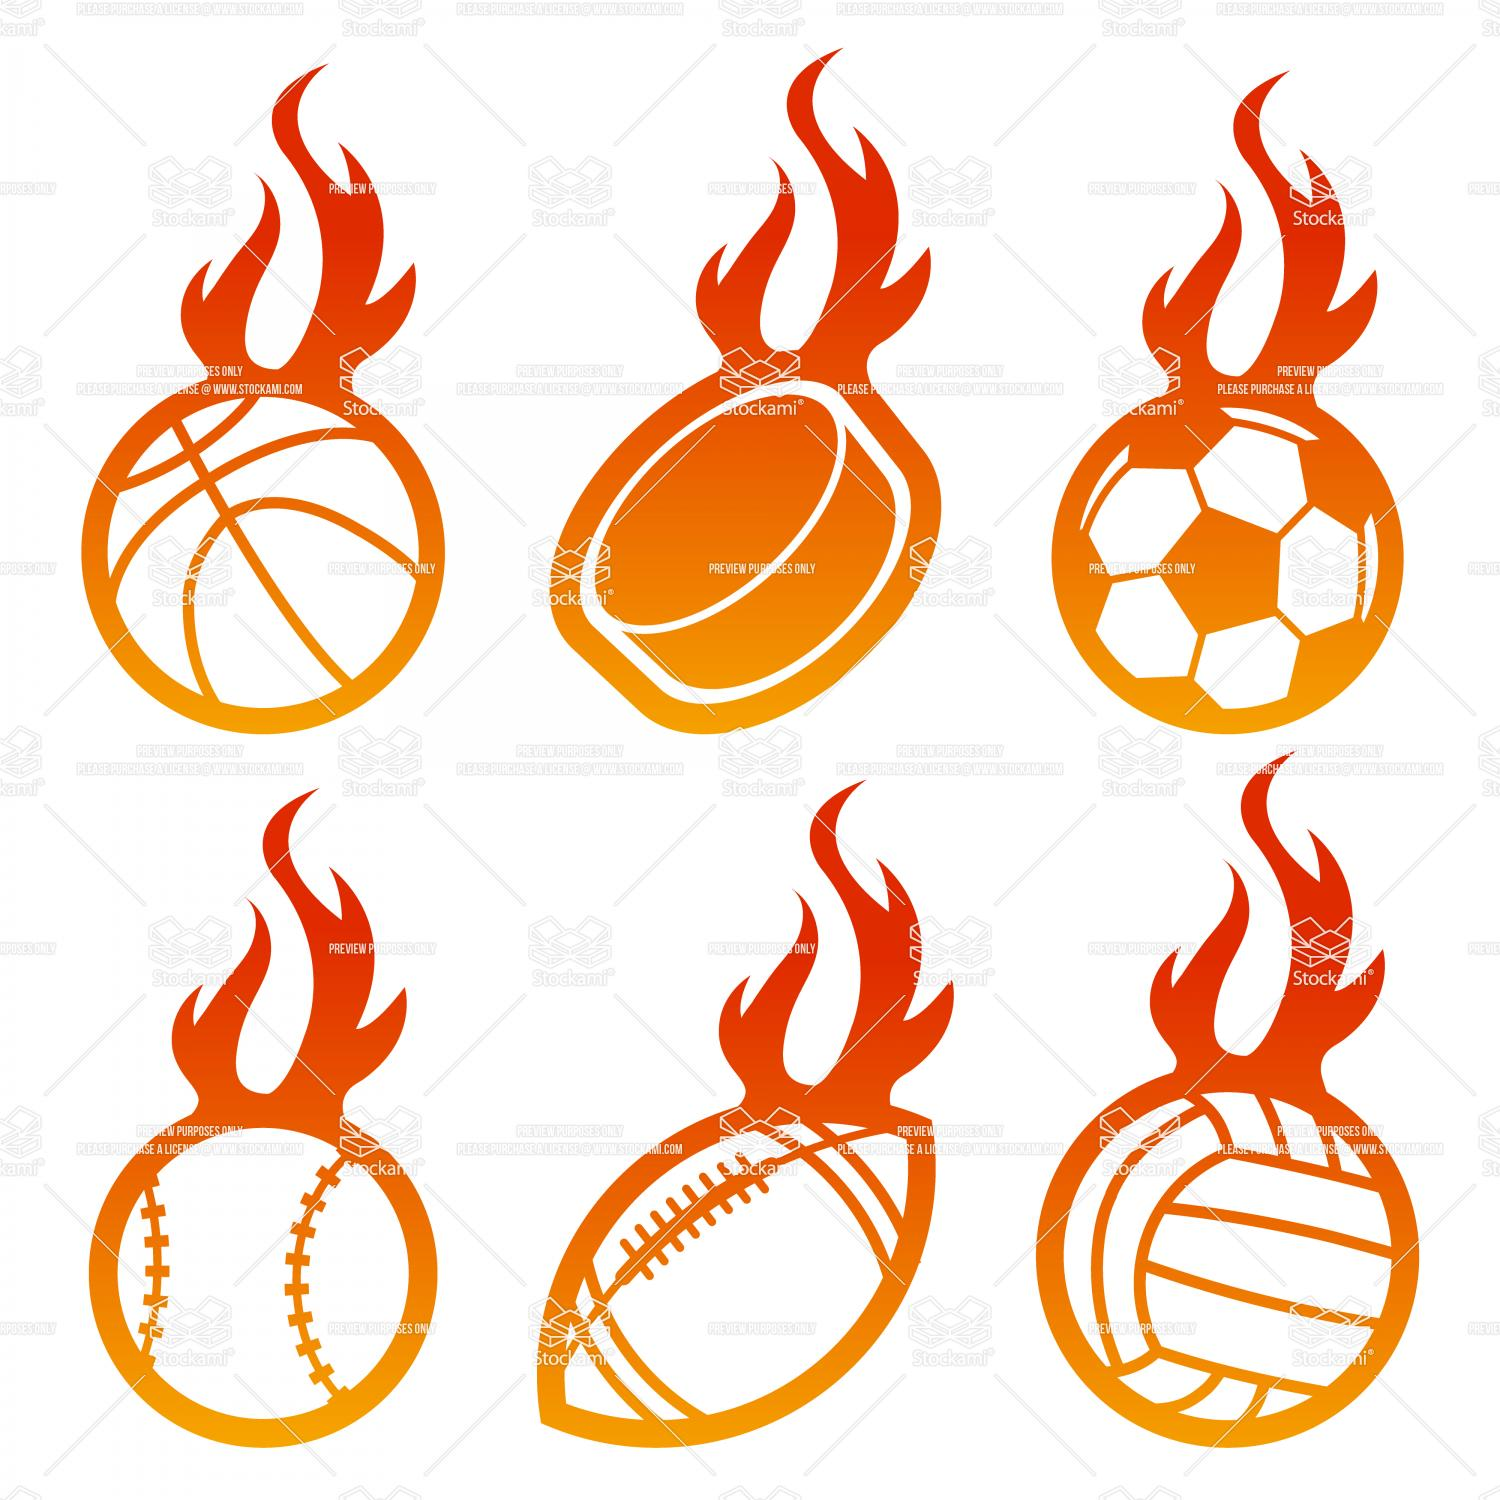 Use these free images for your websites, art projects, reports, and ...: www.clipartpanda.com/categories/sports-balls-vector